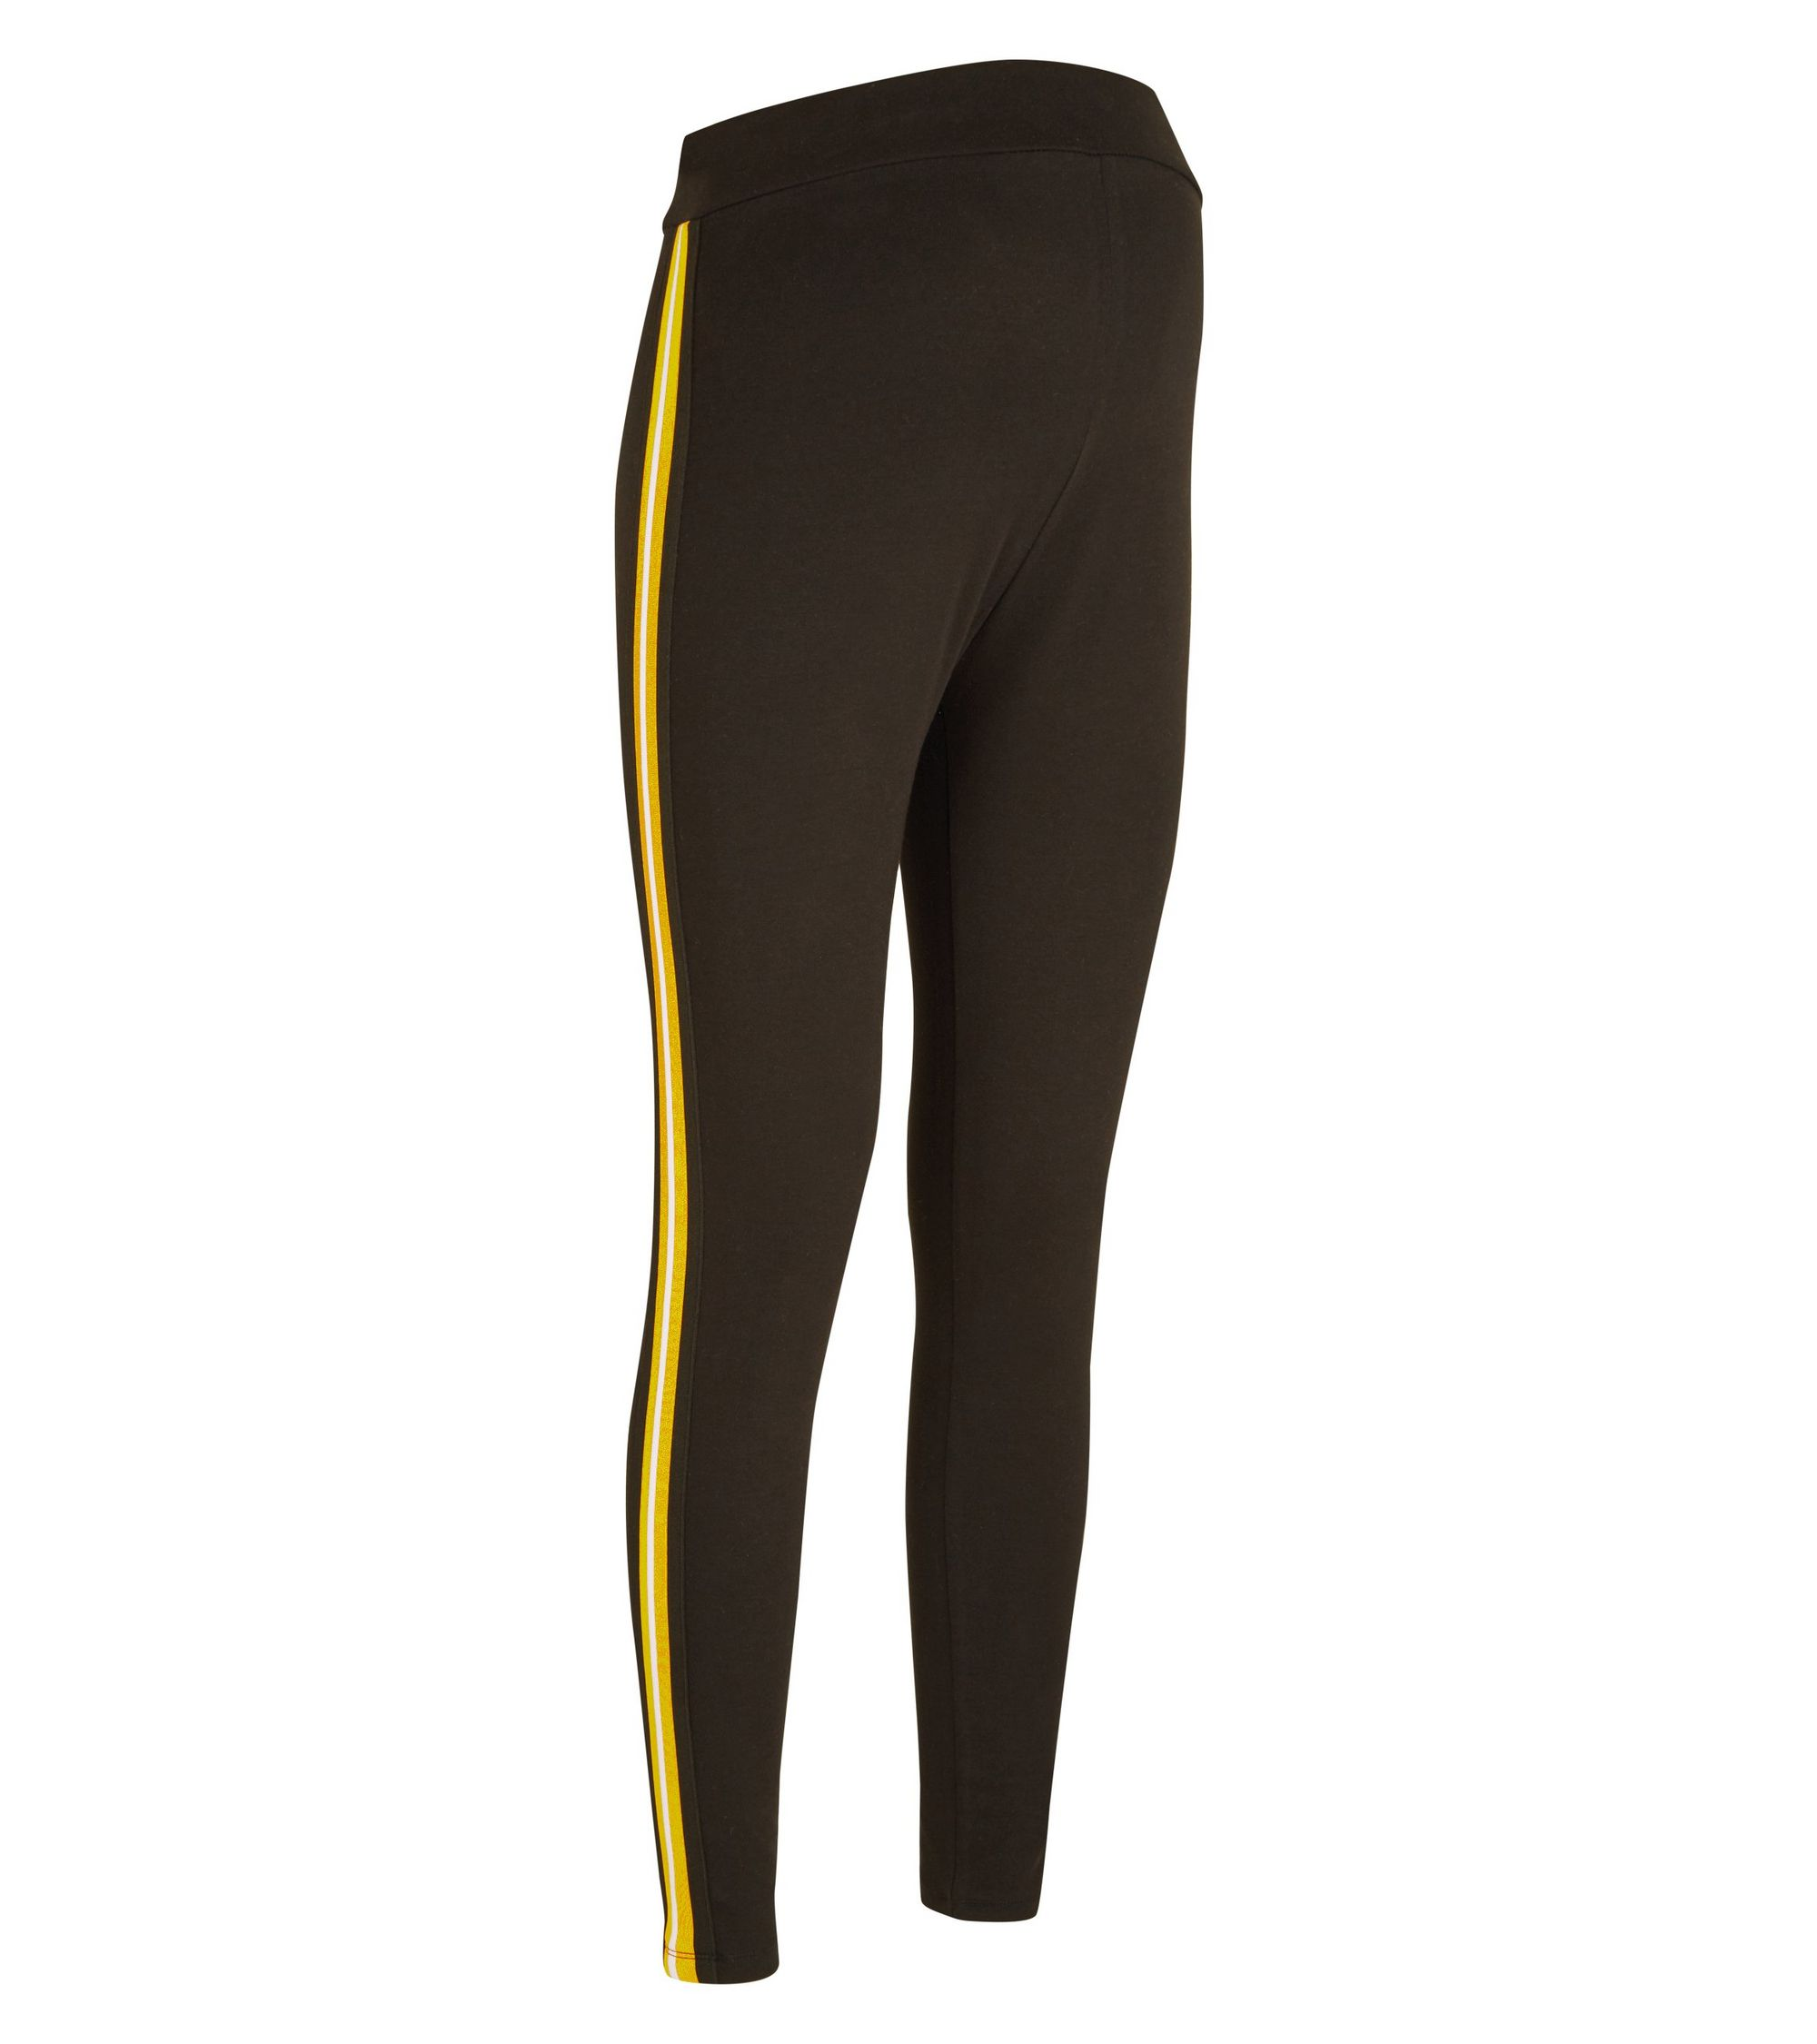 31efc205b89932 New Look Maternity Black and Mustard Side Stripe Leggings at £12.99 ...